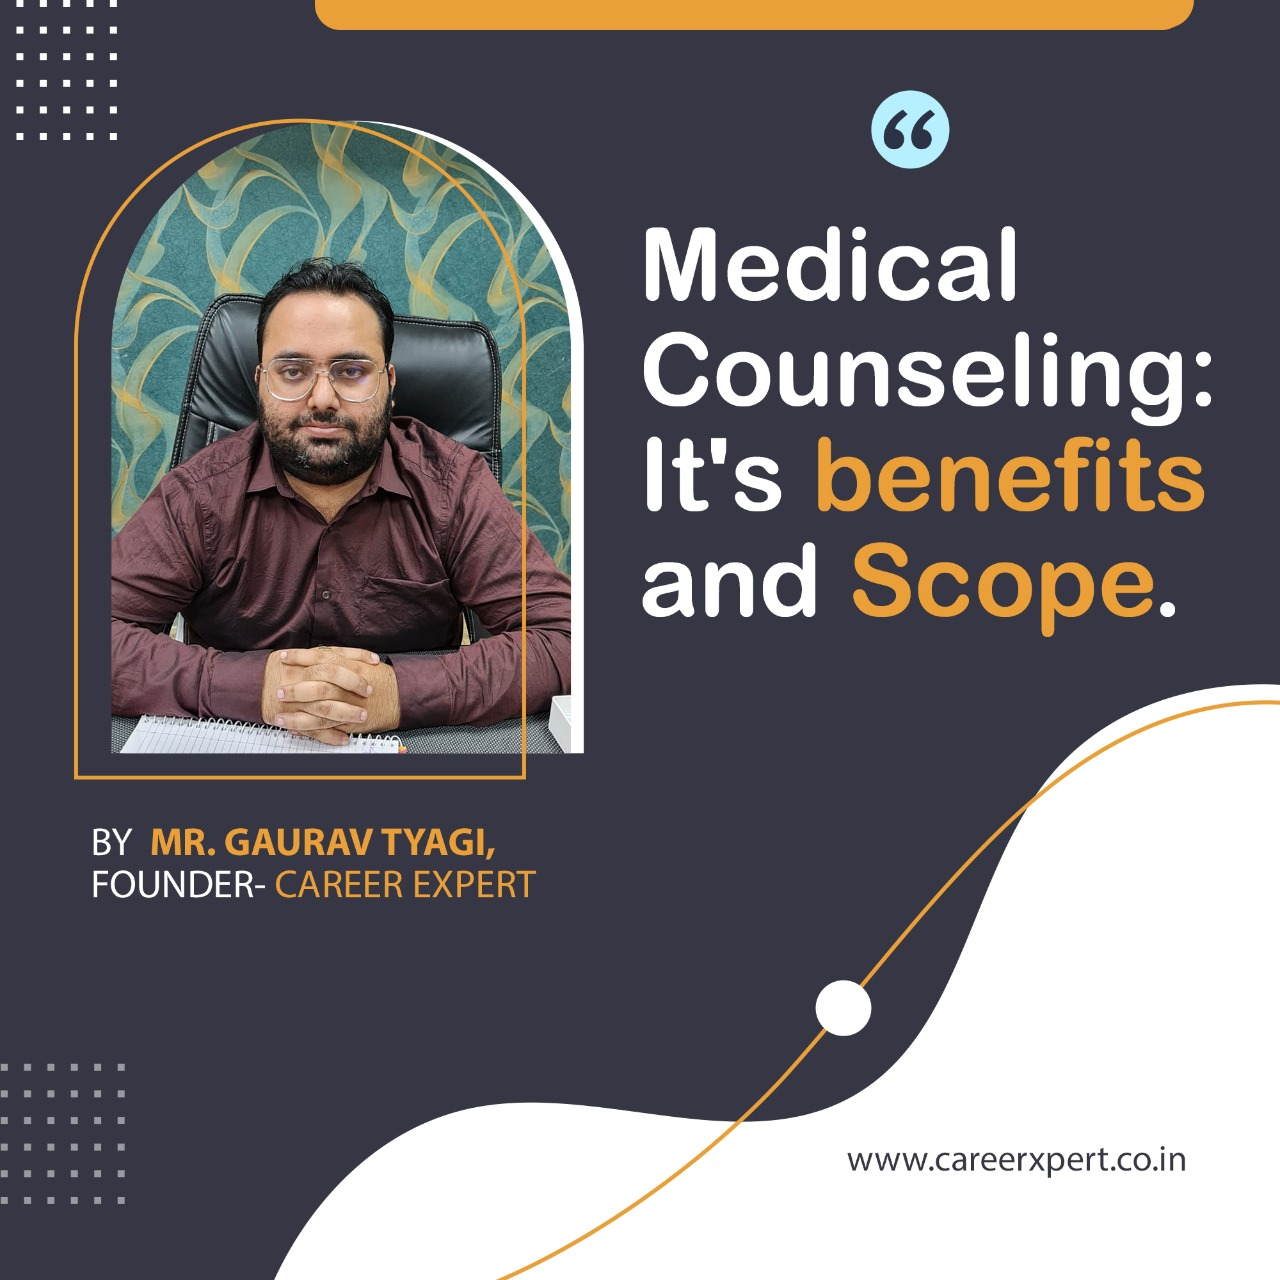 Medical Counseling: Its benefits and scope